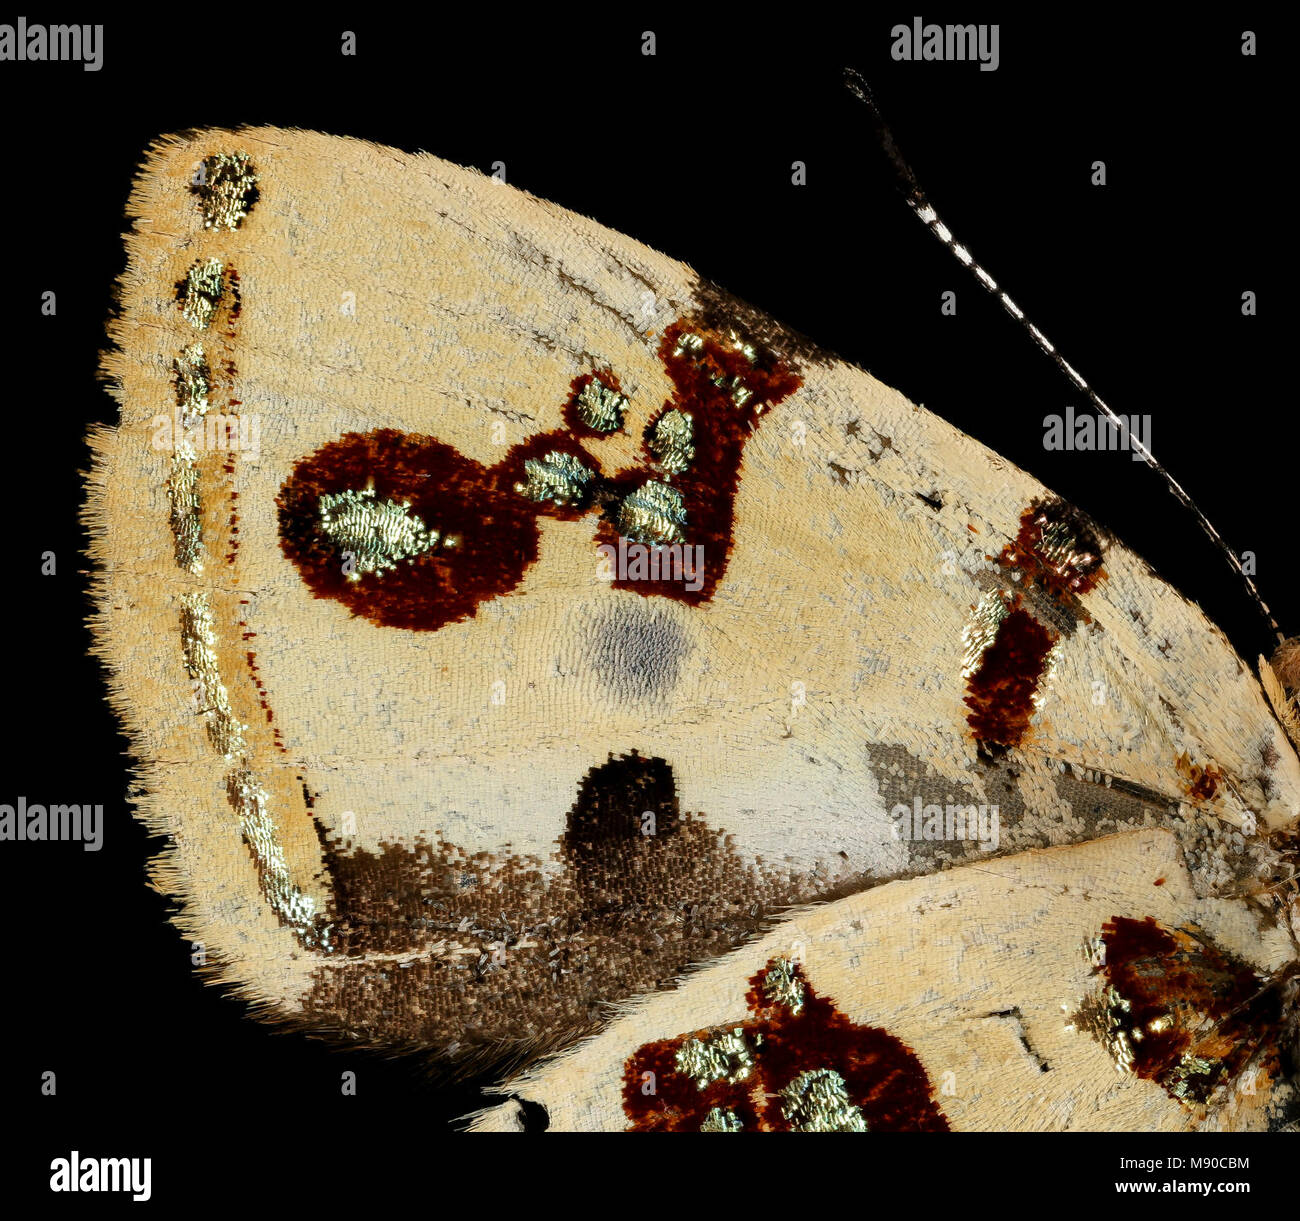 Bling Butterfly - Anteros formosus, m, peru, Cosnipata Valley, brain harris - Stock Image